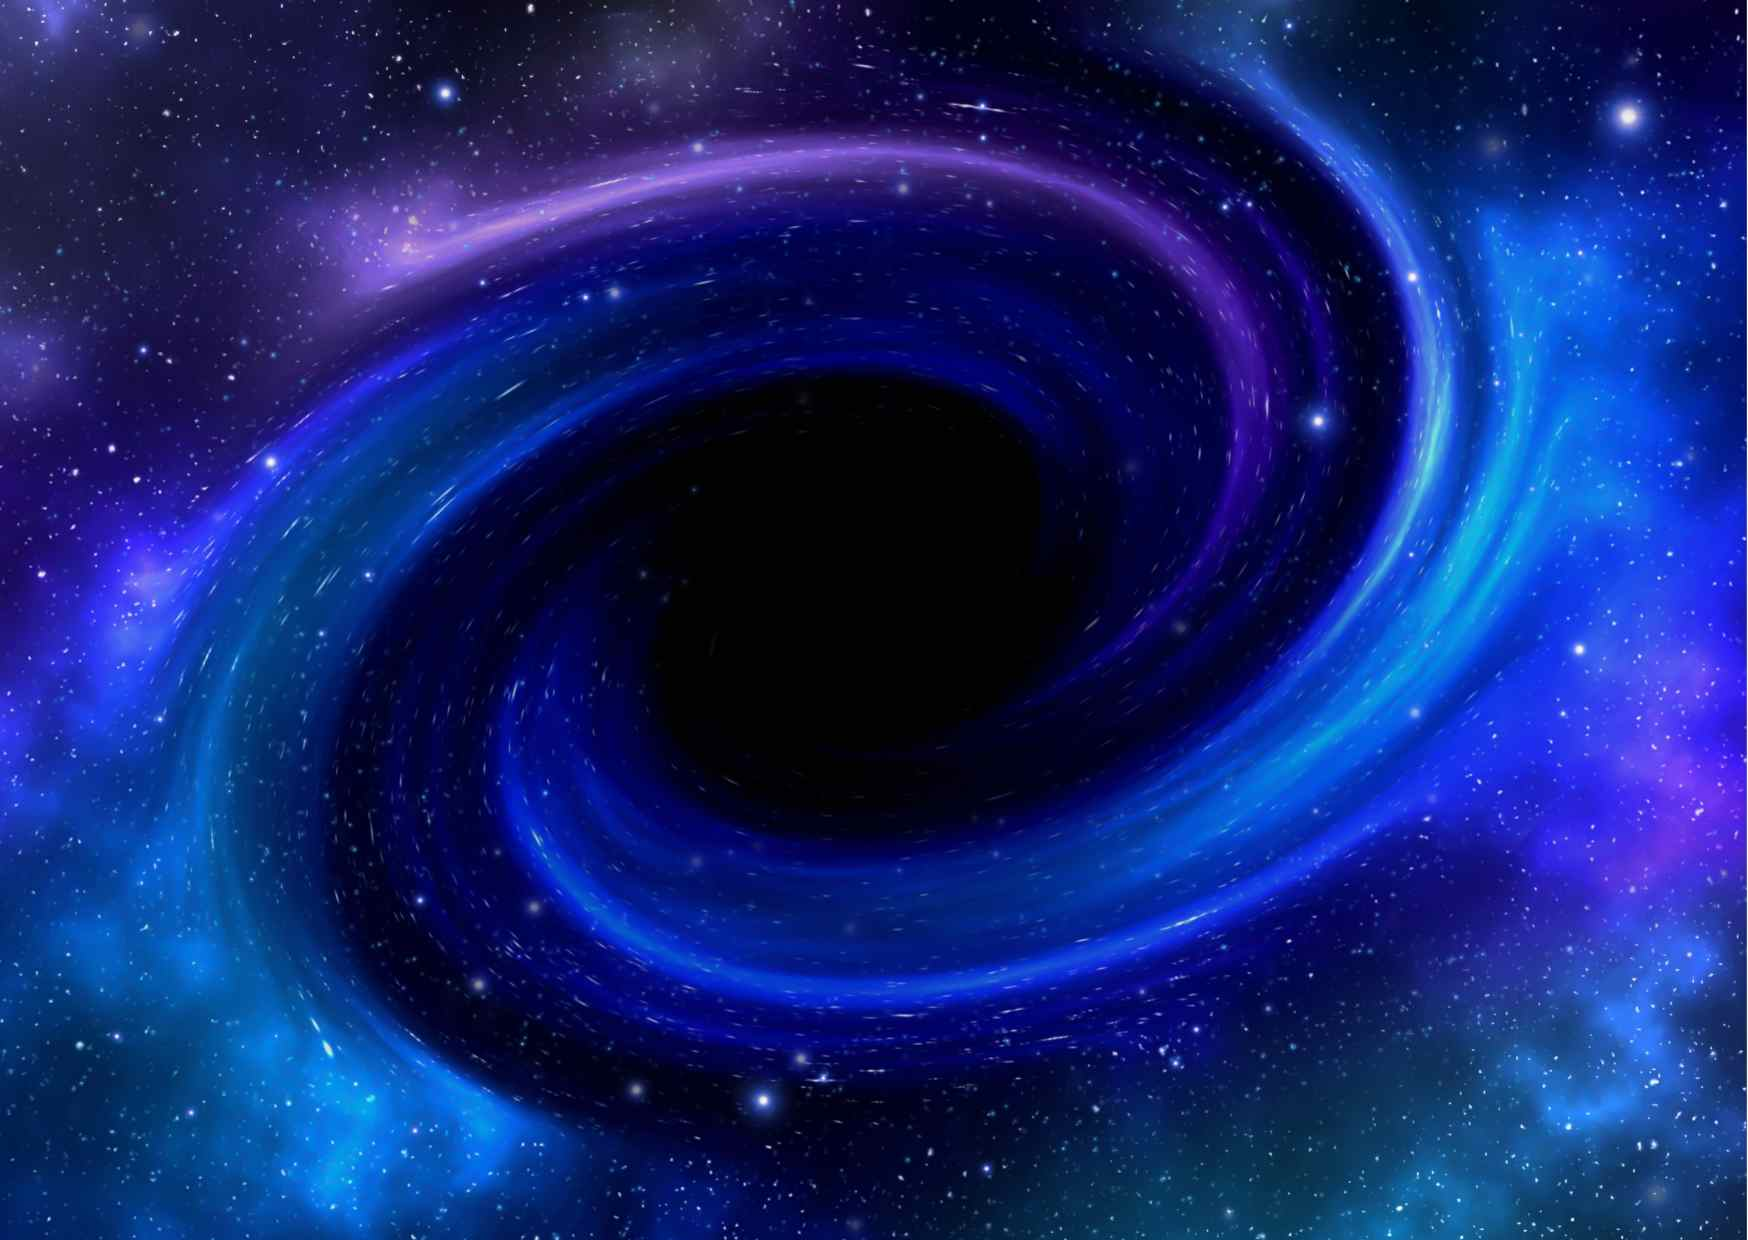 Scientist recent study on black hole | what did they find?